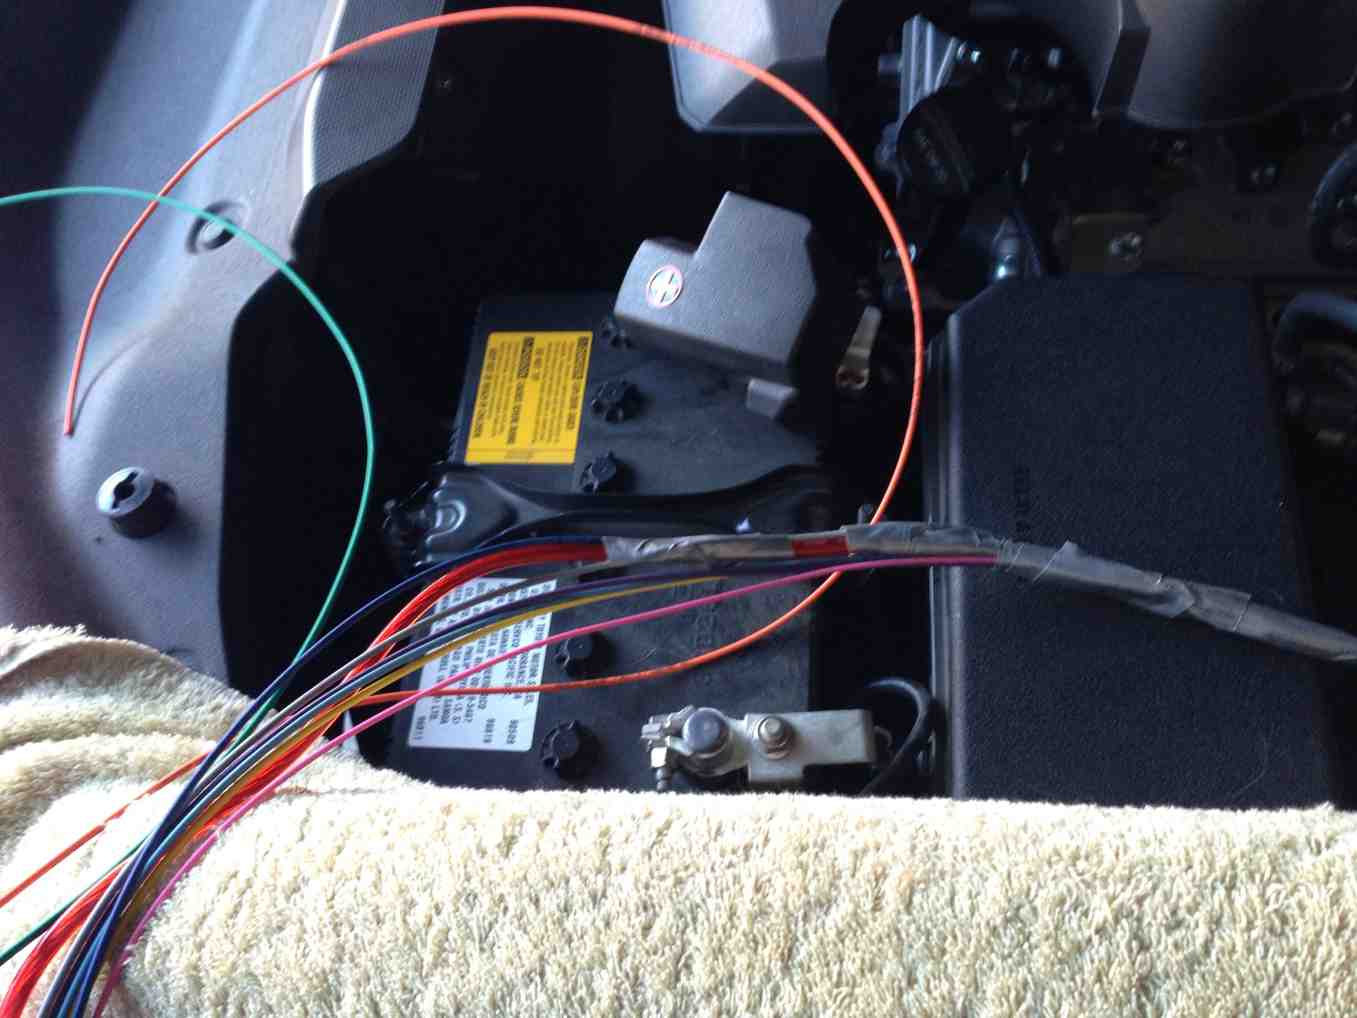 Toyota 4runner Forum Largest View Single Post Painless Fuse Boxes So Here Is The Box And Amp Power Also A Bundle Of Wire For Future Accessories That Are In Engine Compartment Air Compressor